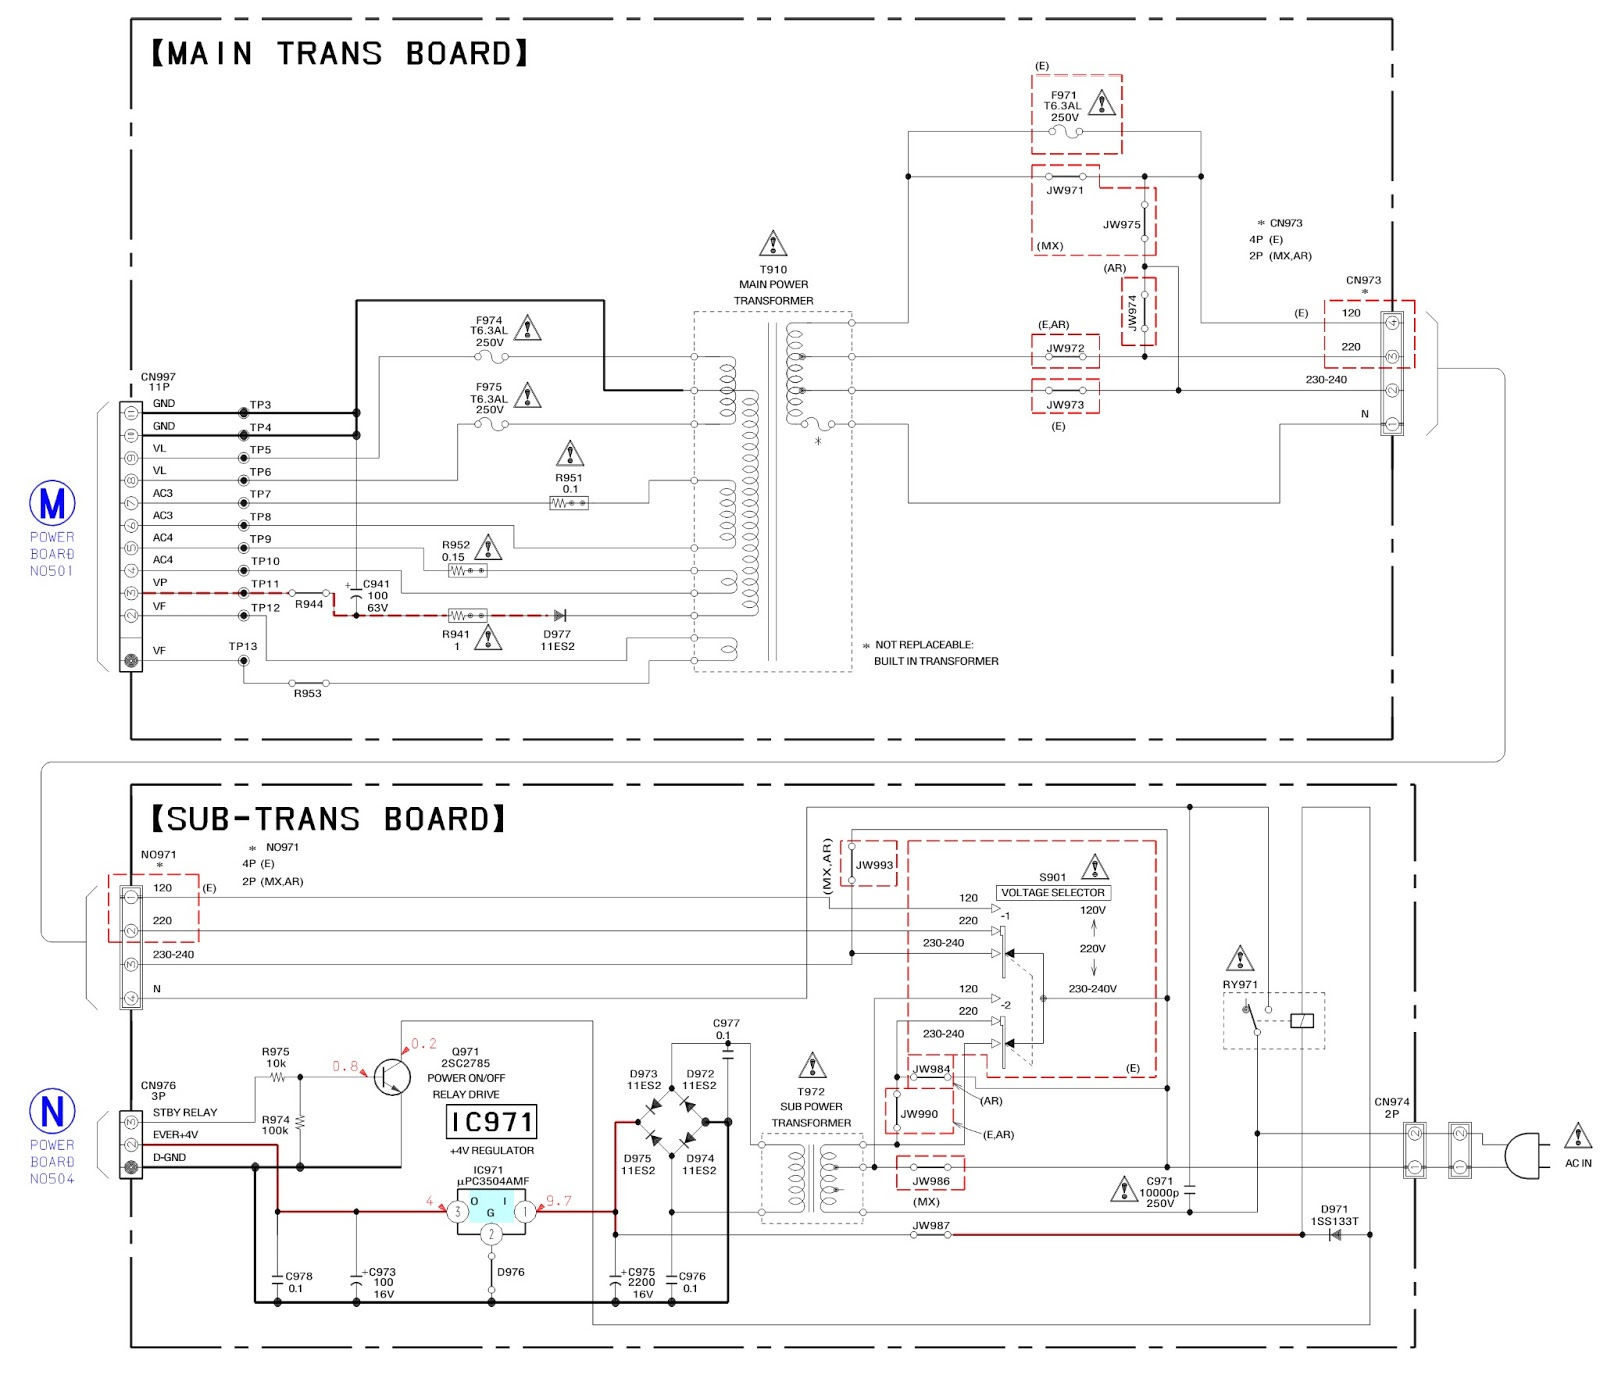 Sony Hcd Rg66t Stk 442 130 Power Amp Supply Schematics Circuit Board Diagram Test Mode Details Click On Pictures To Zoom In